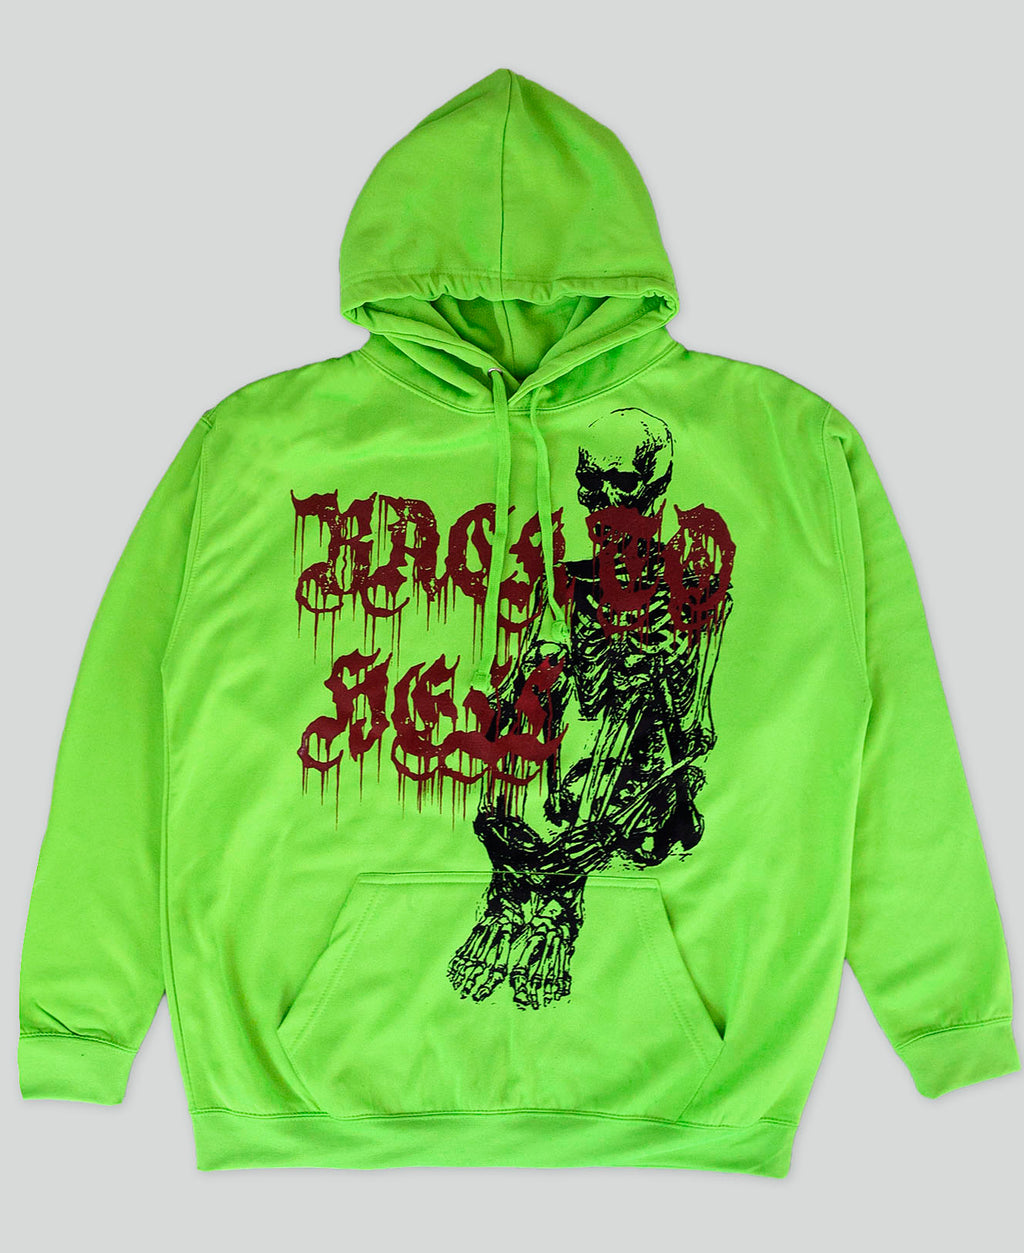 Hell And Back Hoodie - The Anti Life Ltd